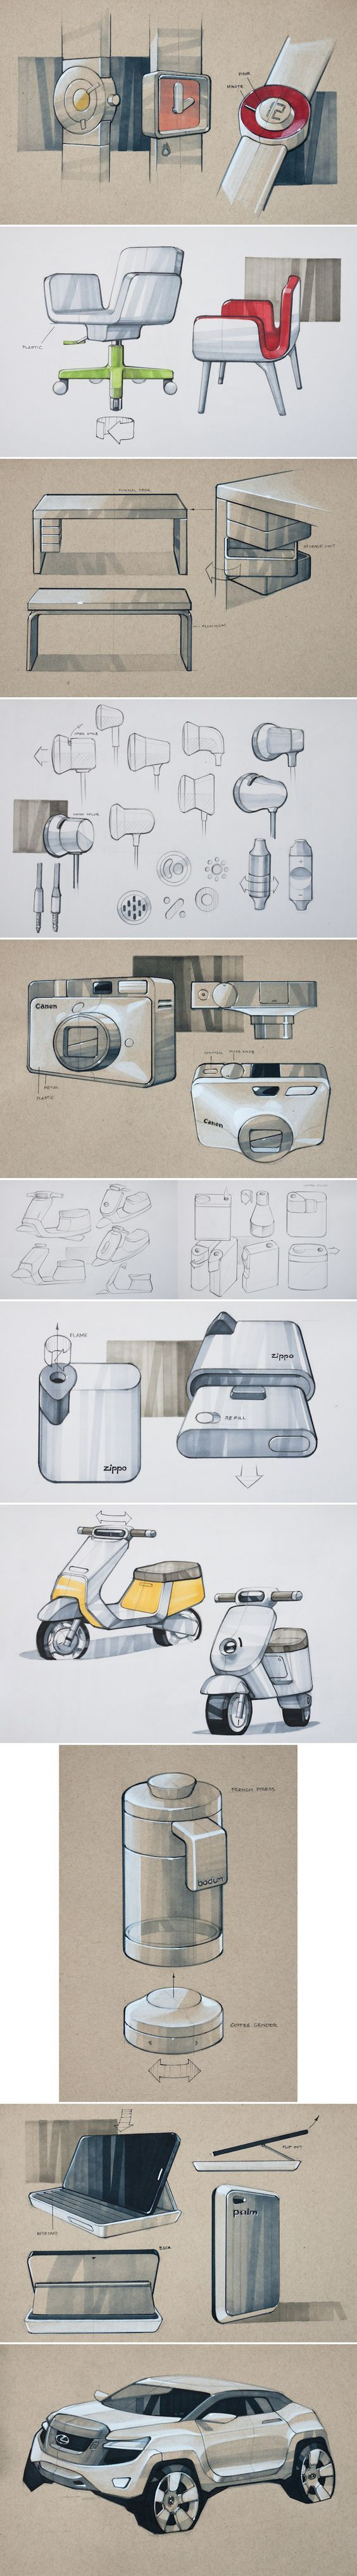 #id #design #product #sketch: